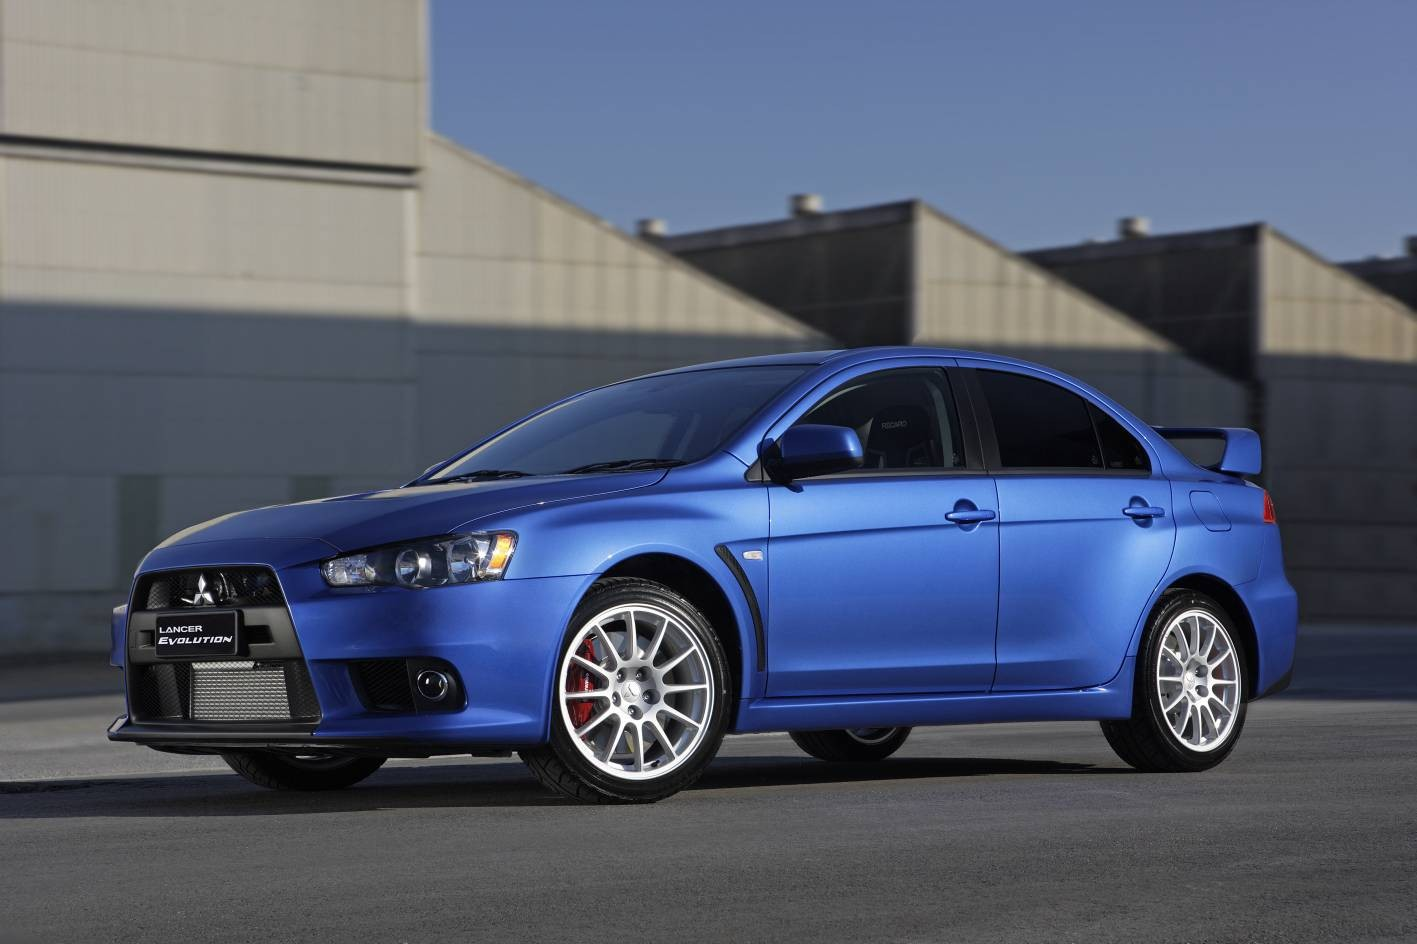 Mitsubishi Lancer Evolution 2.0 2009 photo - 1